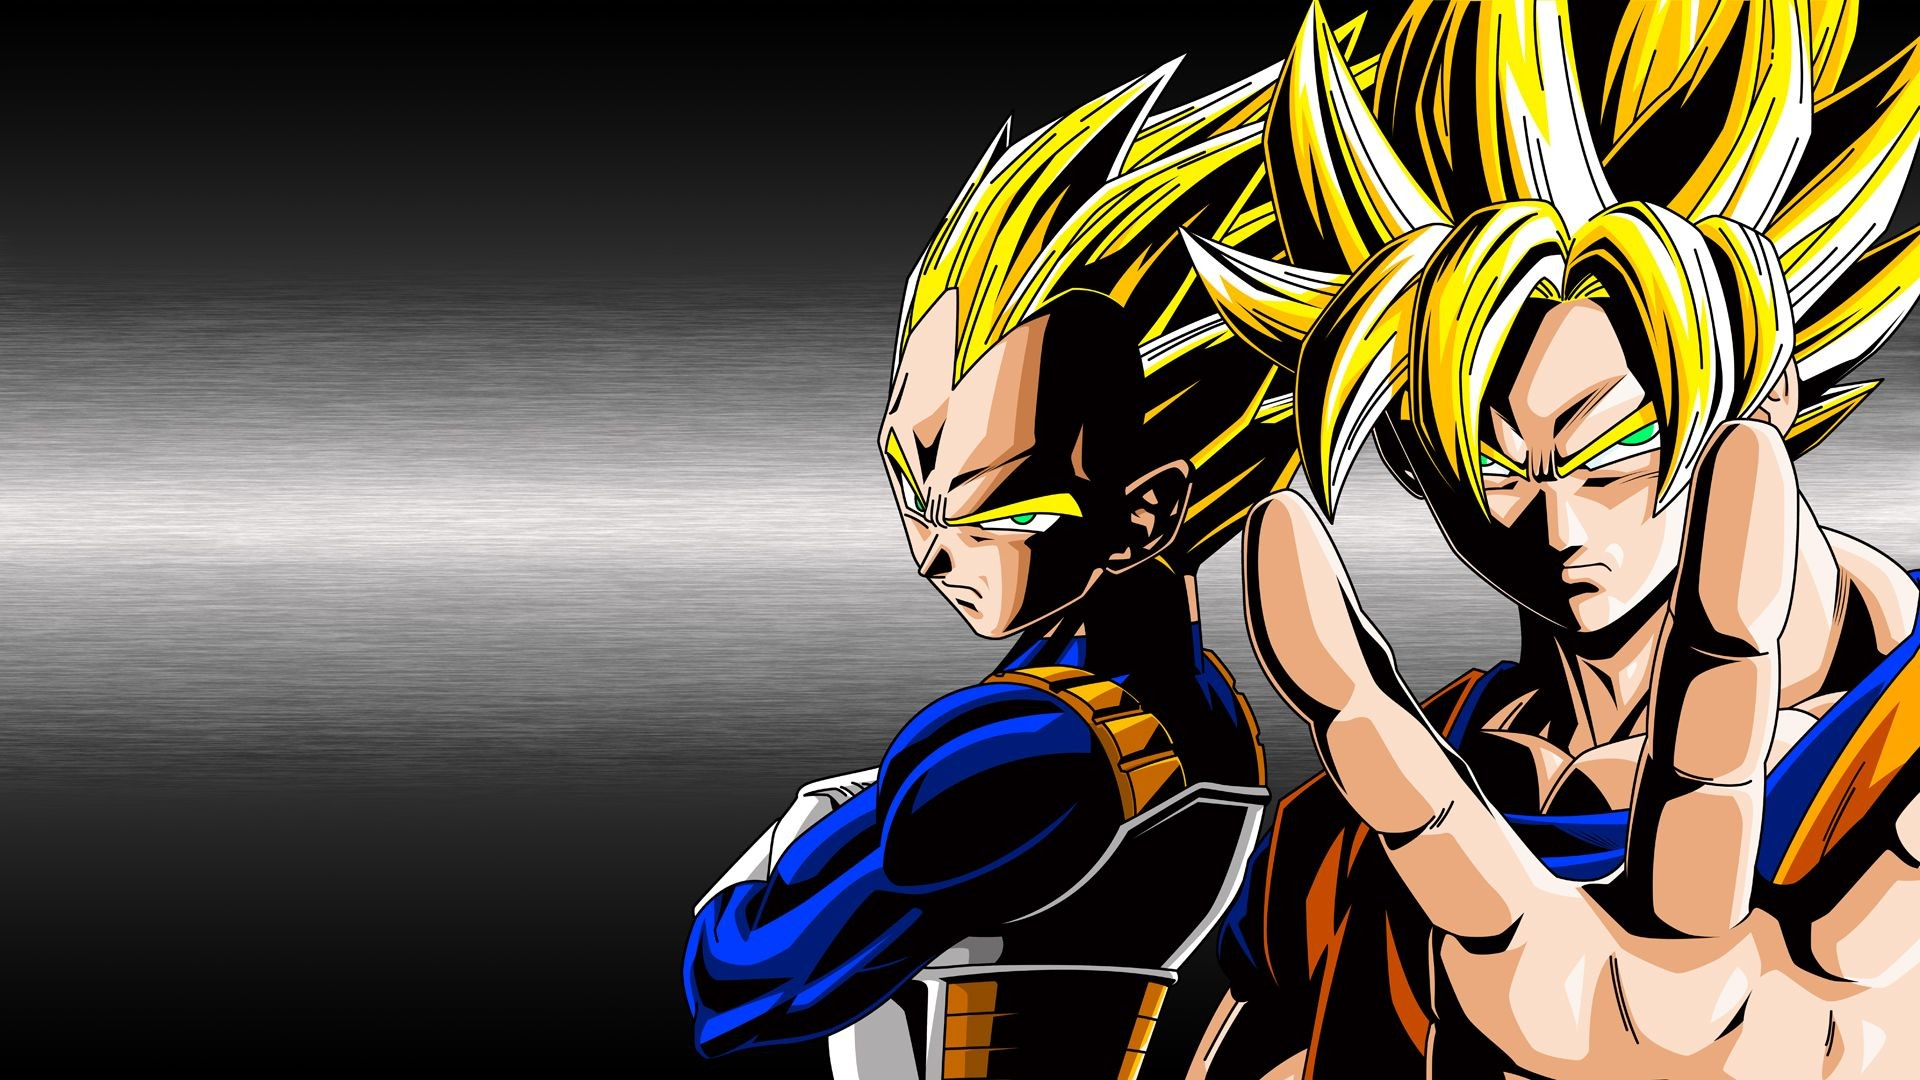 Vegeta HD Background, Picture, Image